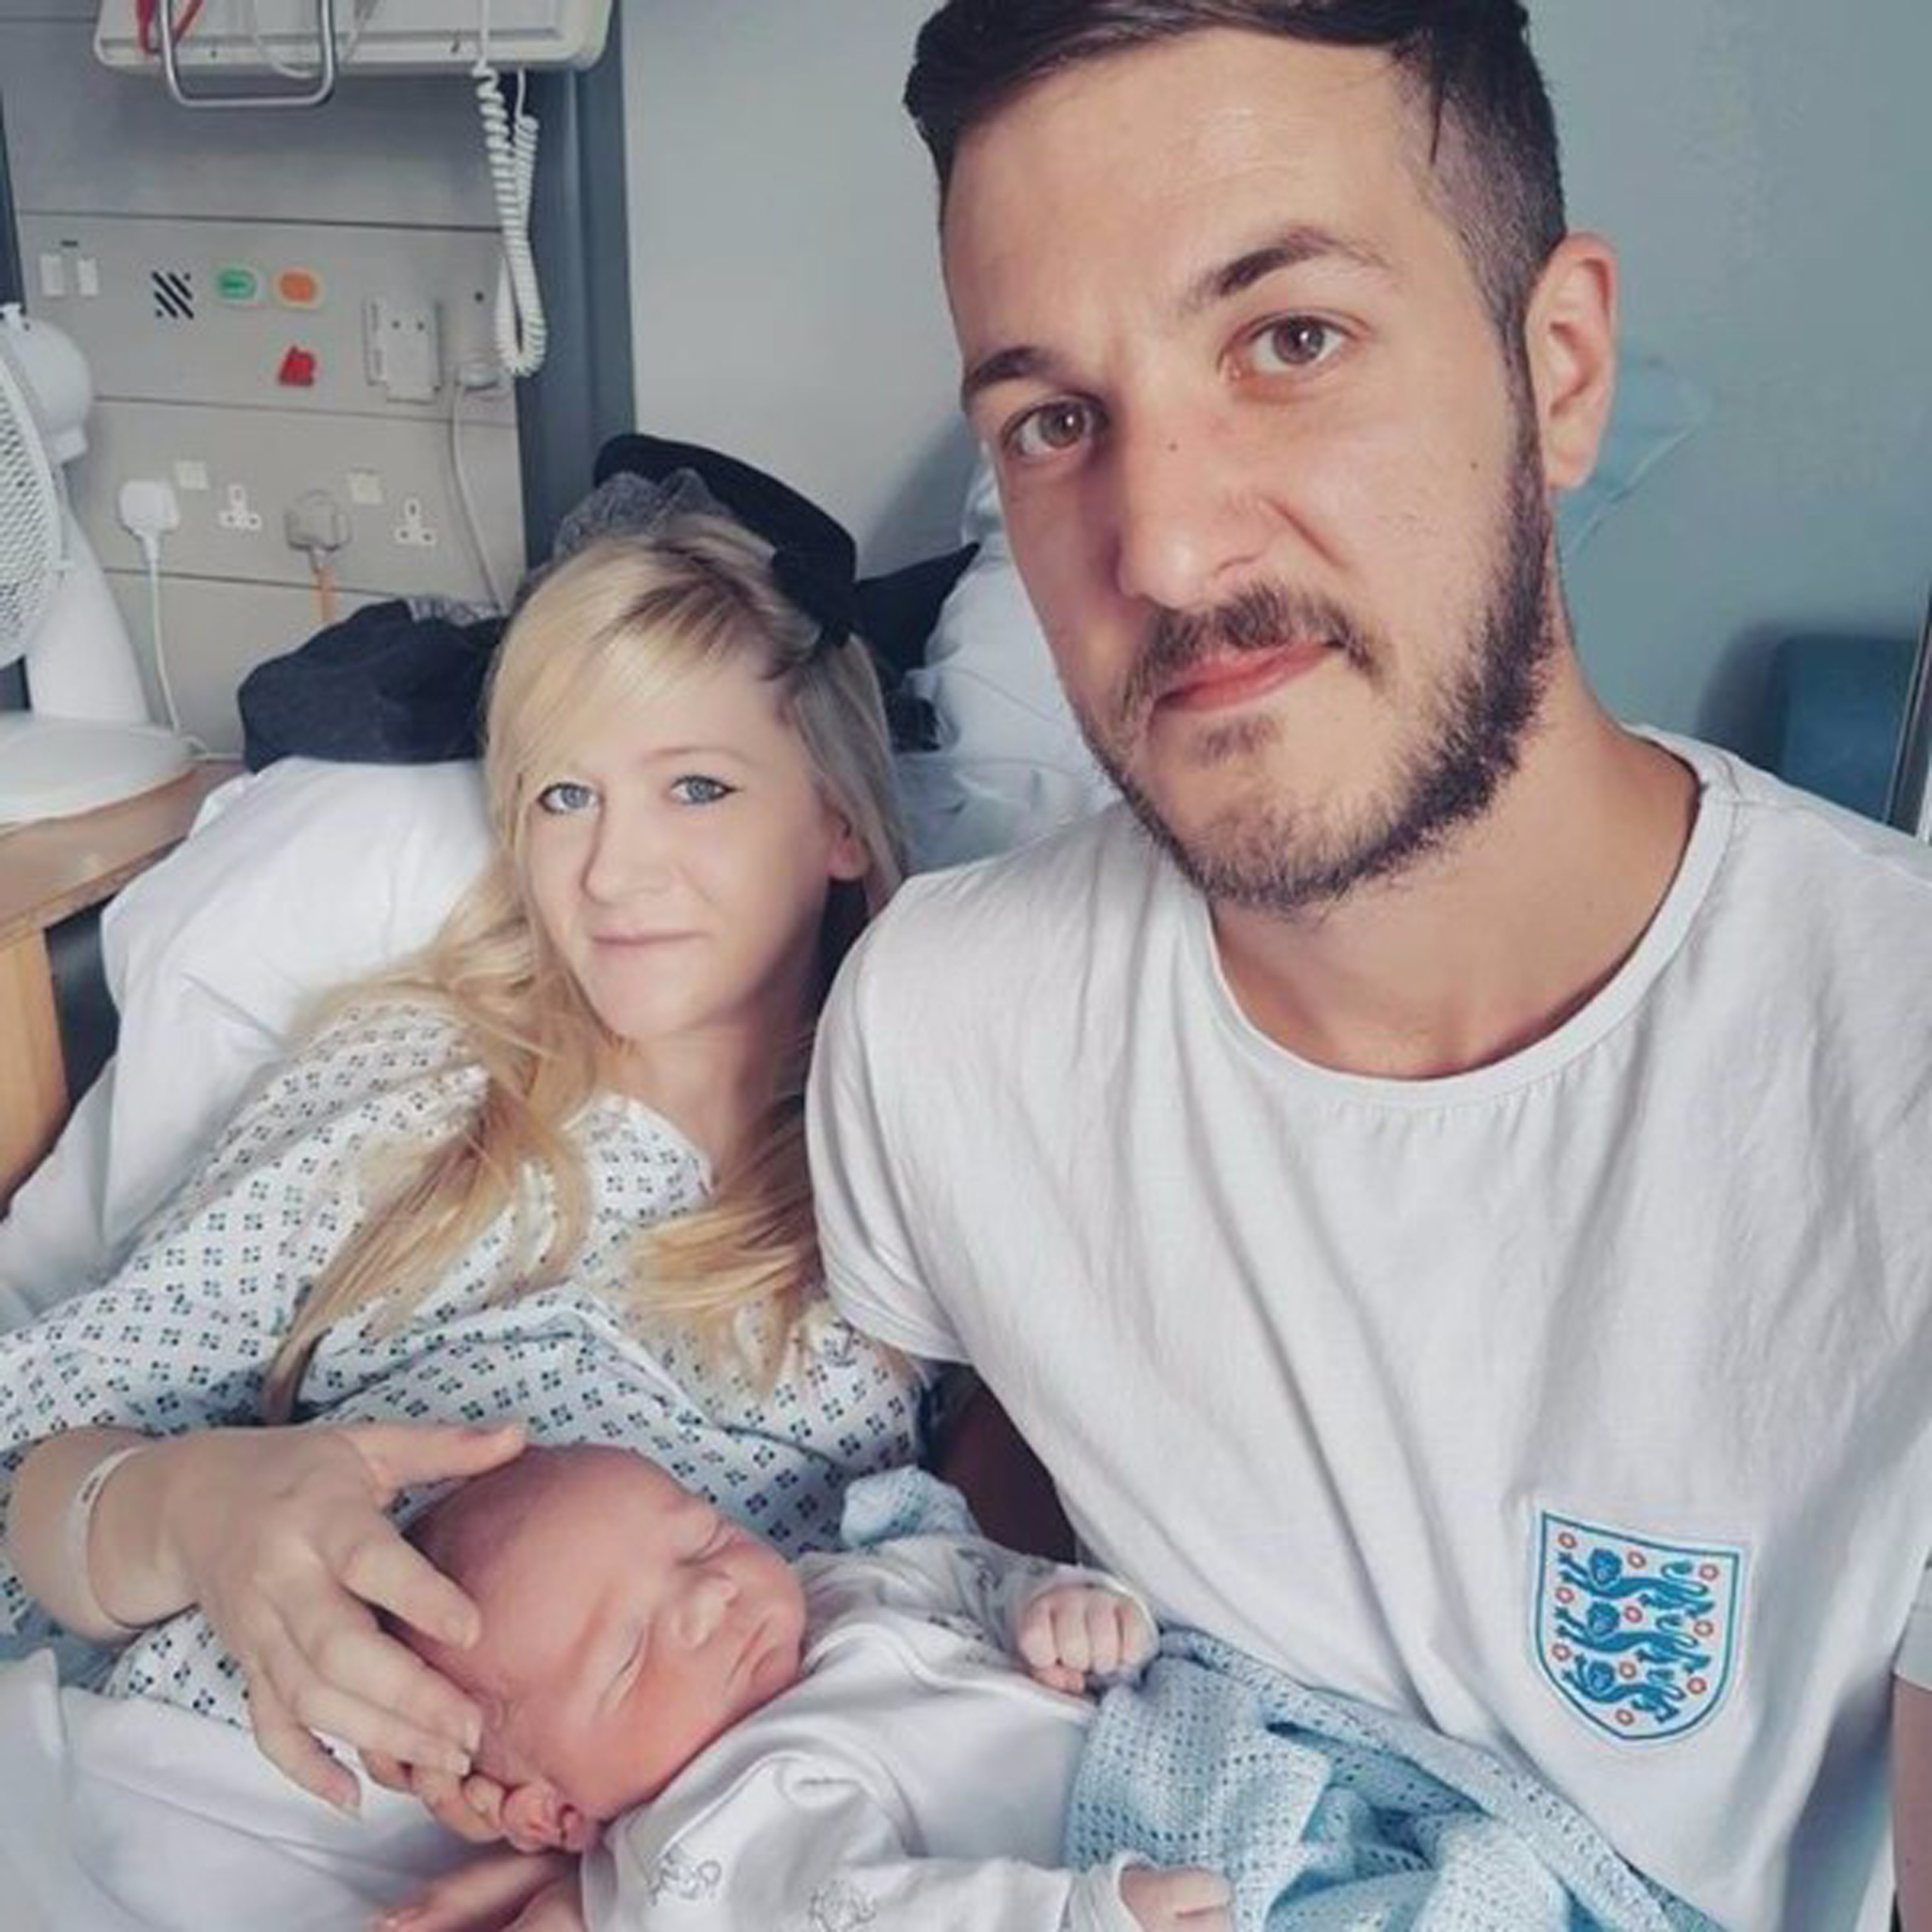 Charlie Gard Parents Given Deadline to Decide Baby's Fate